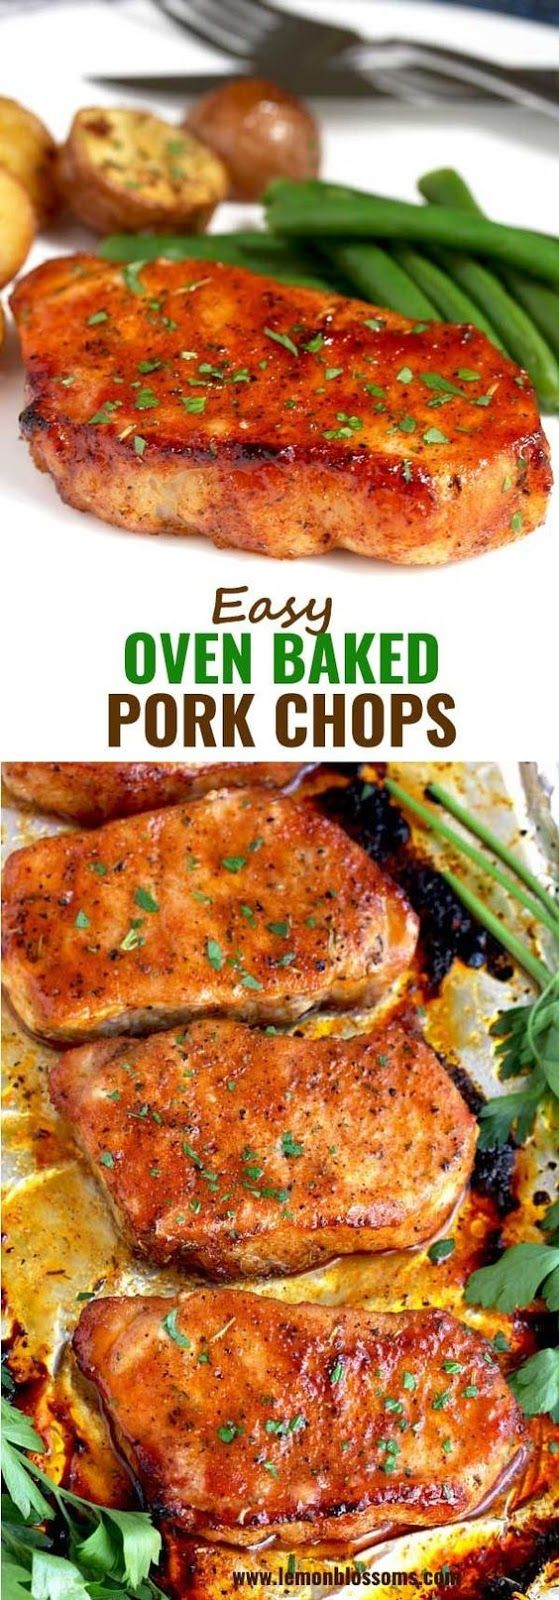 Photo of Easy Oven Baked Pork Chops | Yummy Recipes